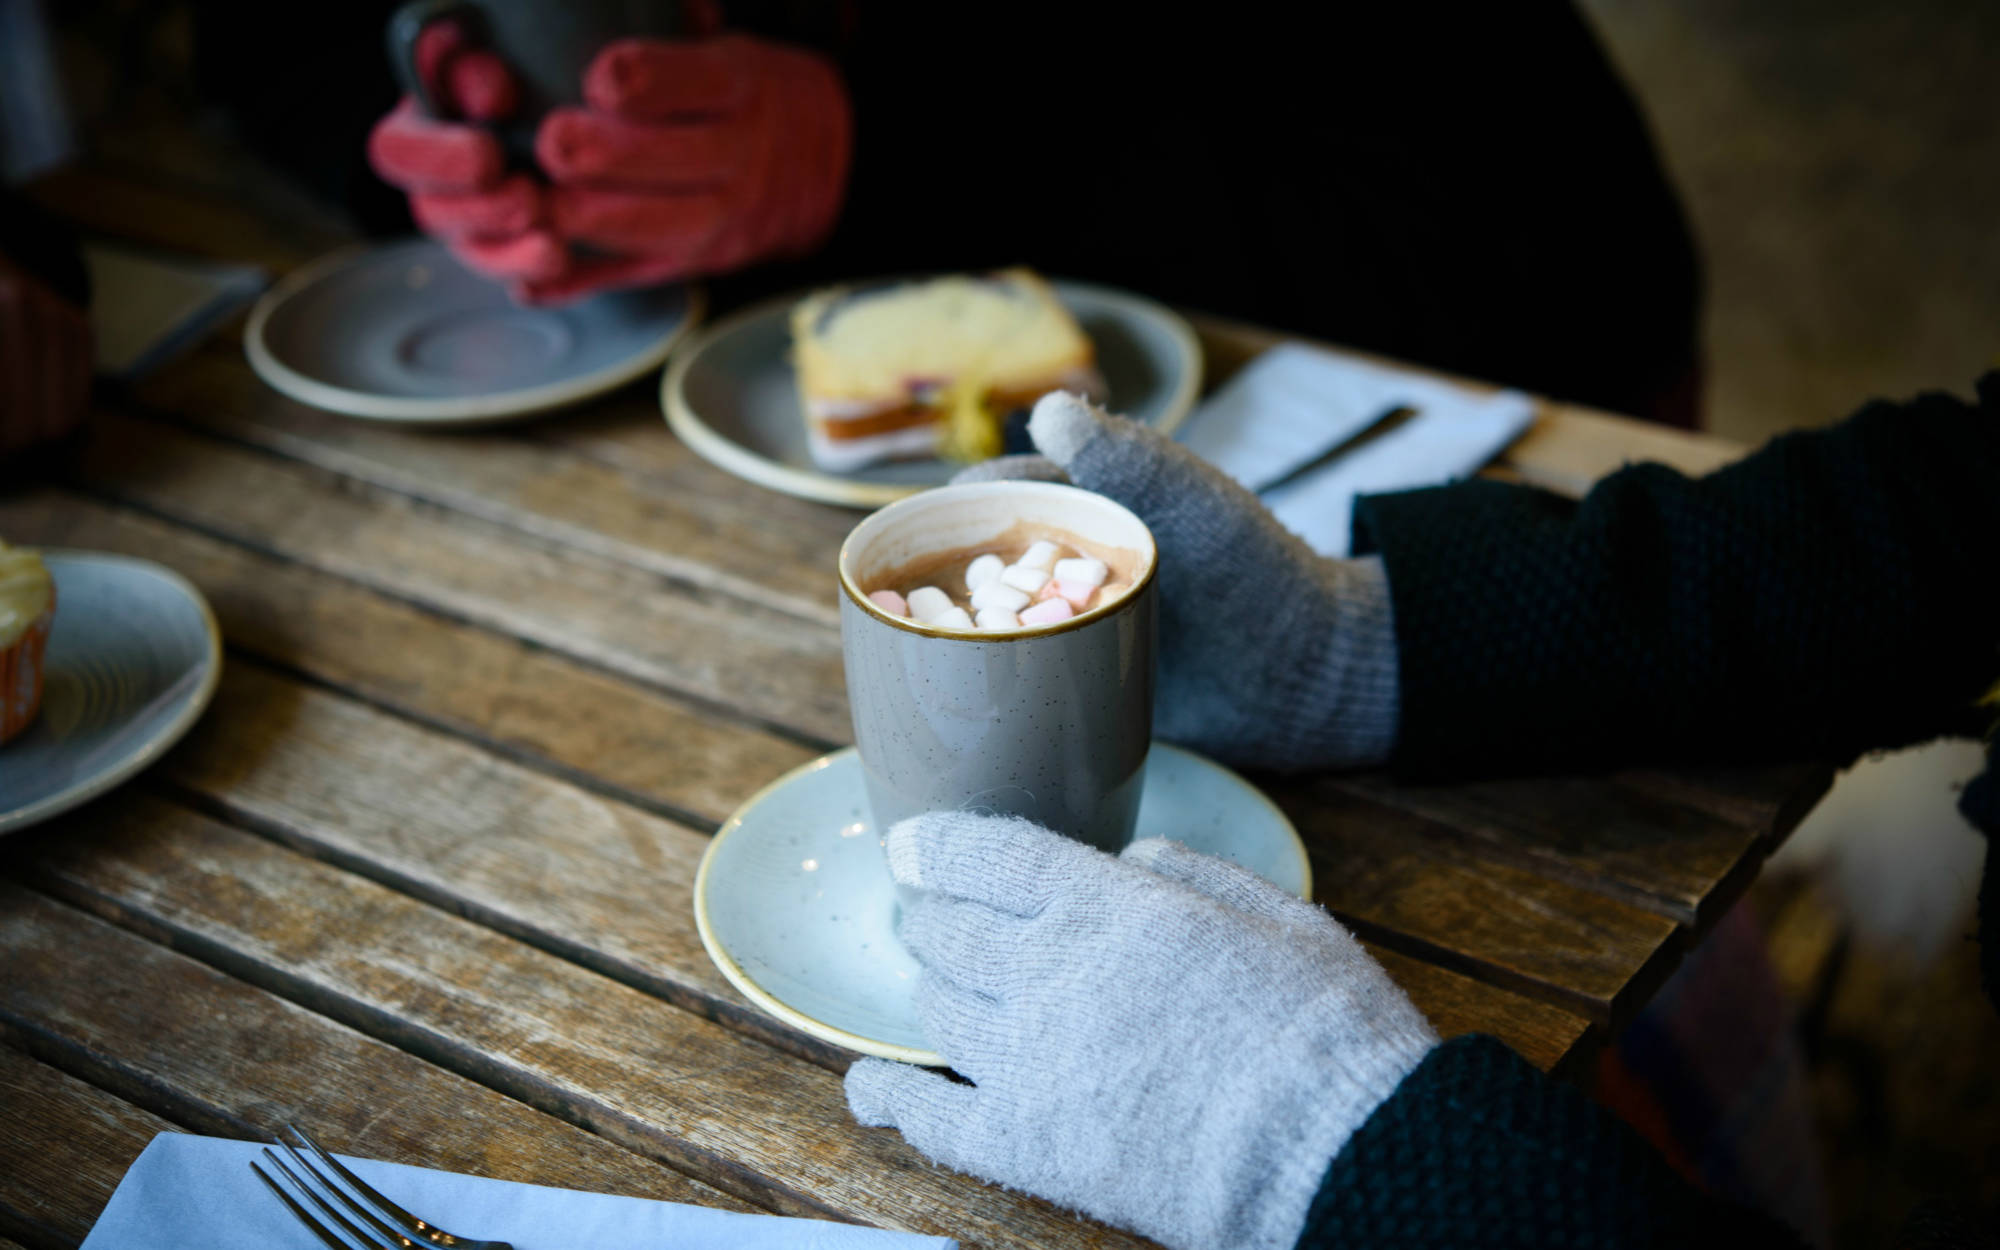 Gloved hands clasp steaming hot chocolate